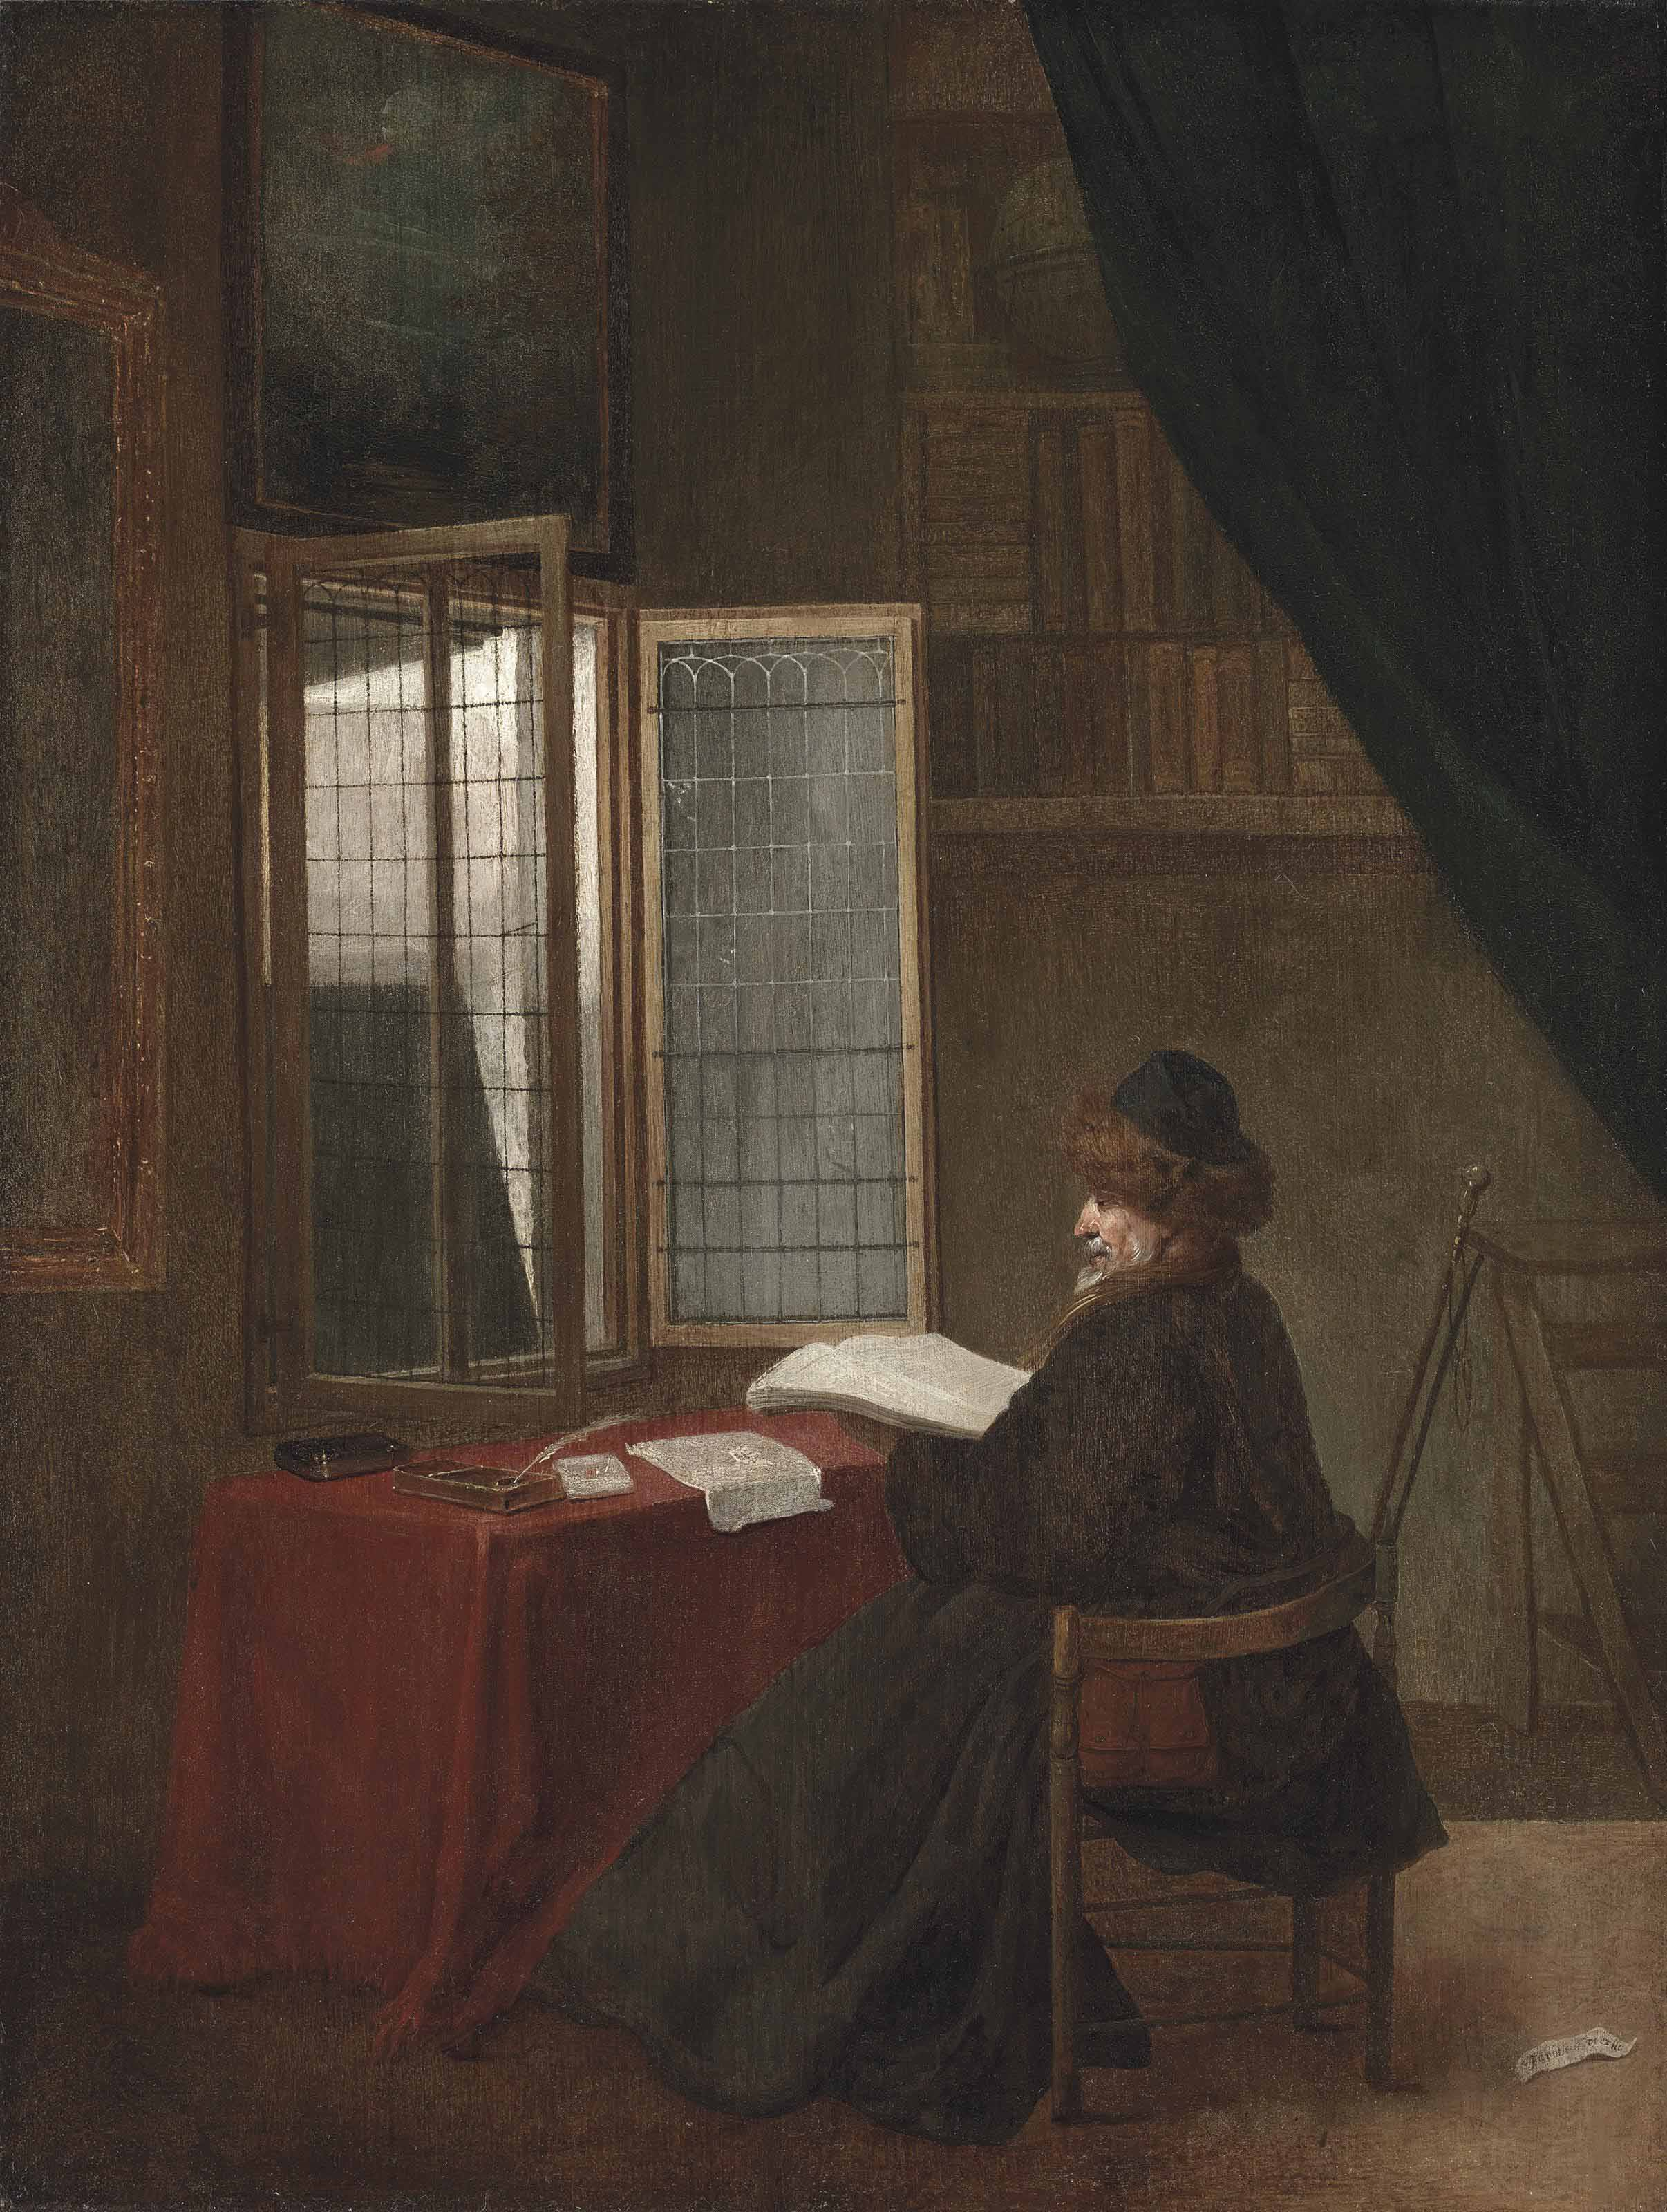 An old man seated at his desk before an open window, holding a book